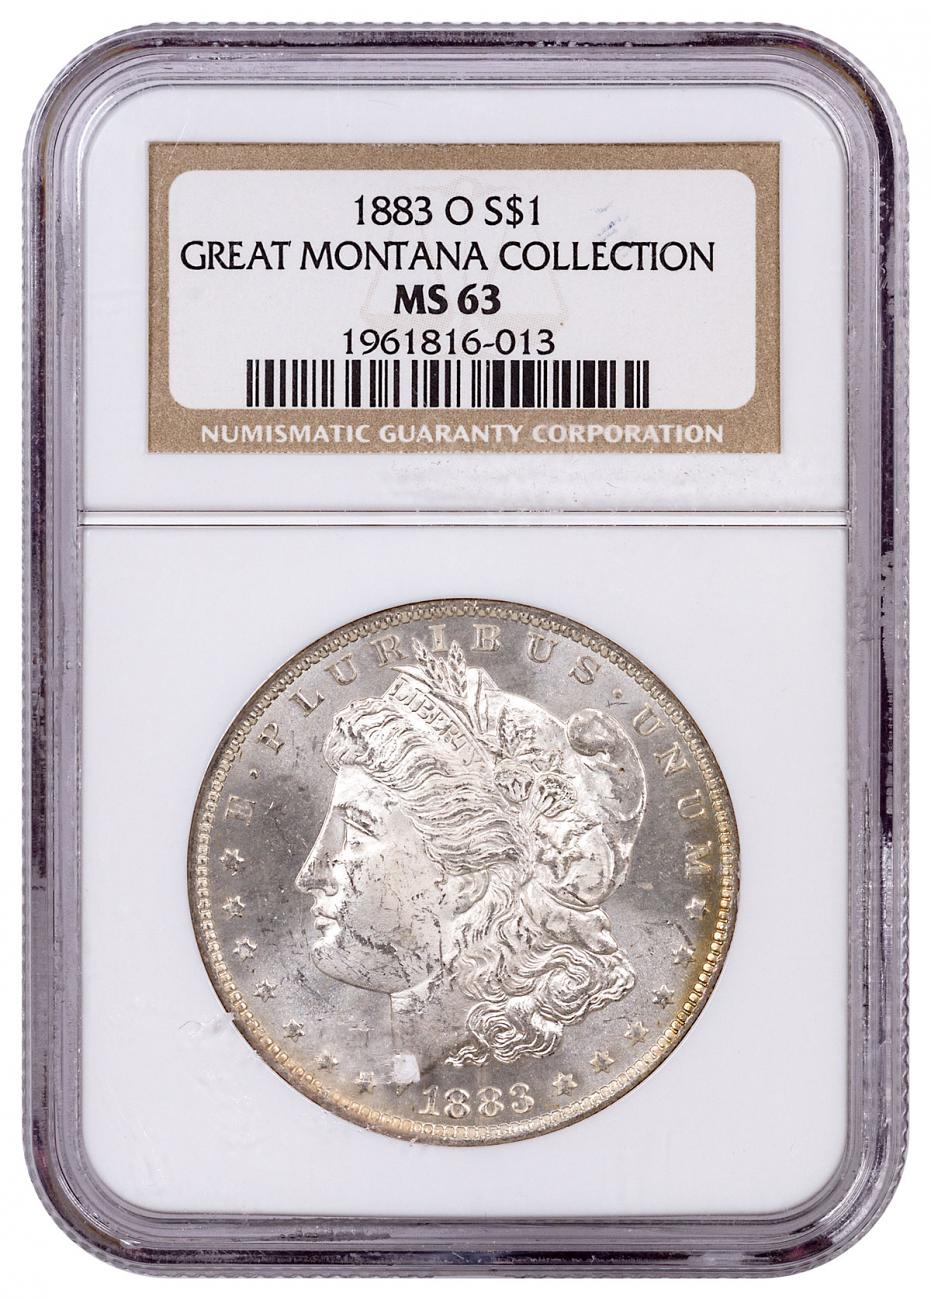 1883-O Morgan Silver Dollar From the Great Montana Collection NGC MS63 Toned CPCR 013